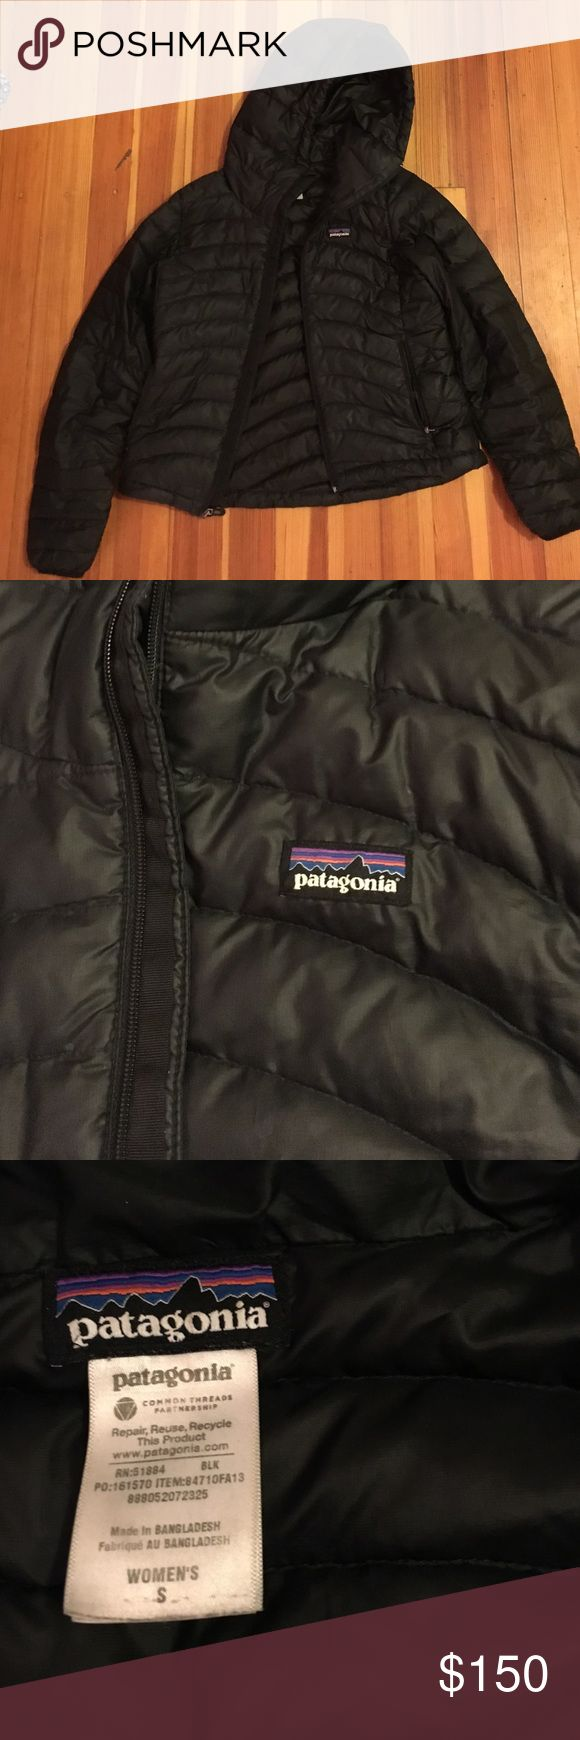 Patagonia down sweater jacket with hood Patagonia down sweater jacket with hood. My favorite jacket thought I lost it and got a new one then found it so selling one. Super warm, like the greatest jacket ever made. 2 outside zipper pockets. Internal pocket. Synced wrist to keep the cold out and adjustable waistline and hood. Fitted too so it looks nice on. Not boxy at all. Patagonia Jackets & Coats Puffers